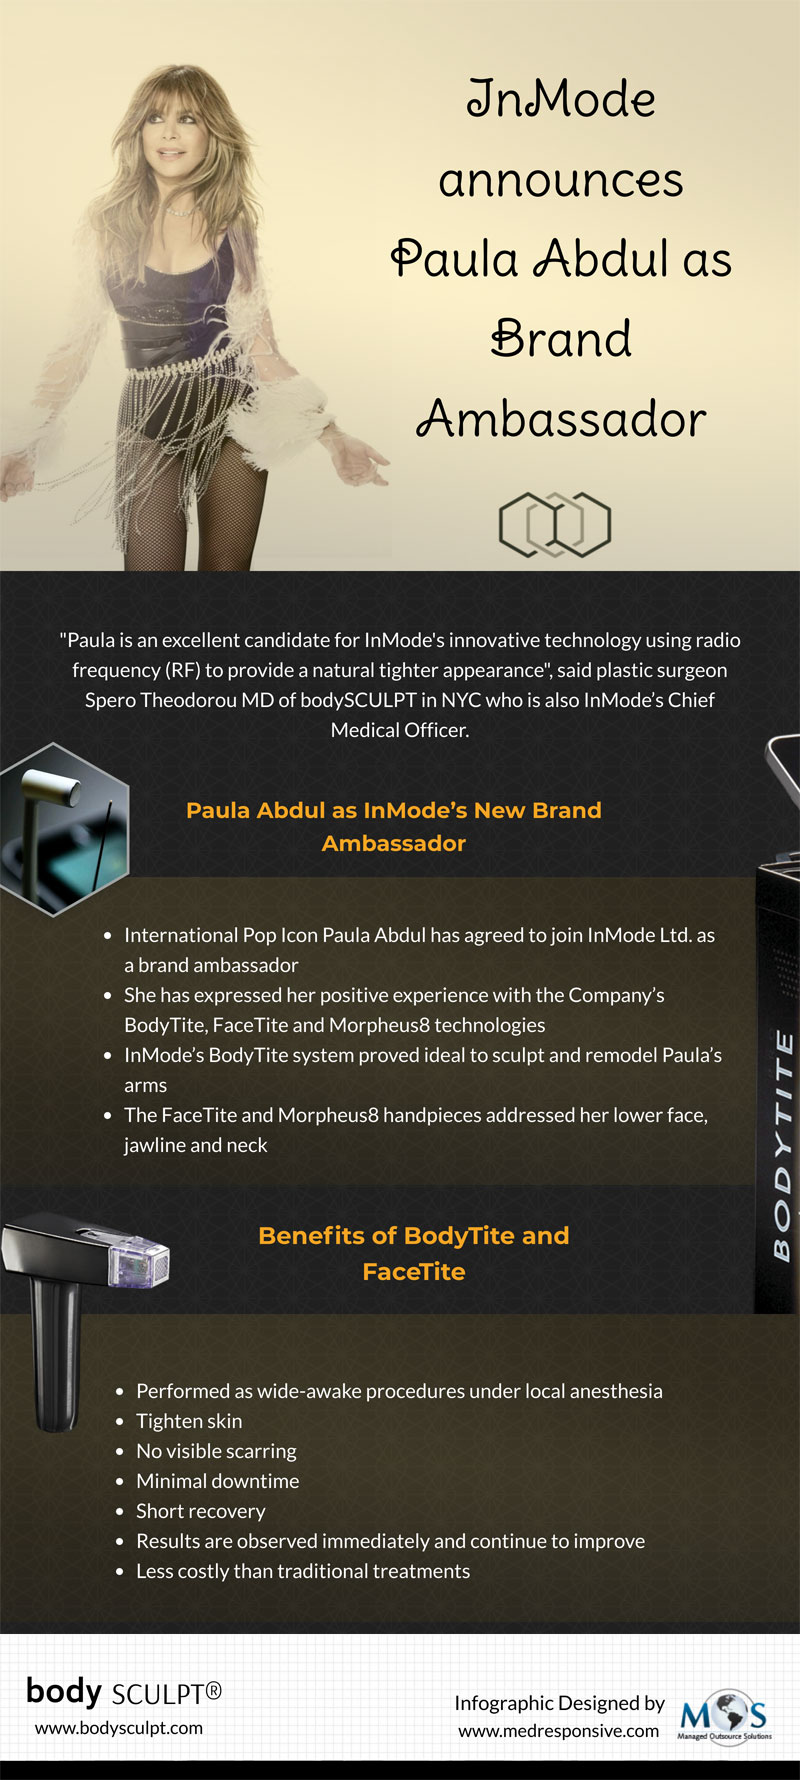 InMode announces Paula Abdul as Brand Ambassador